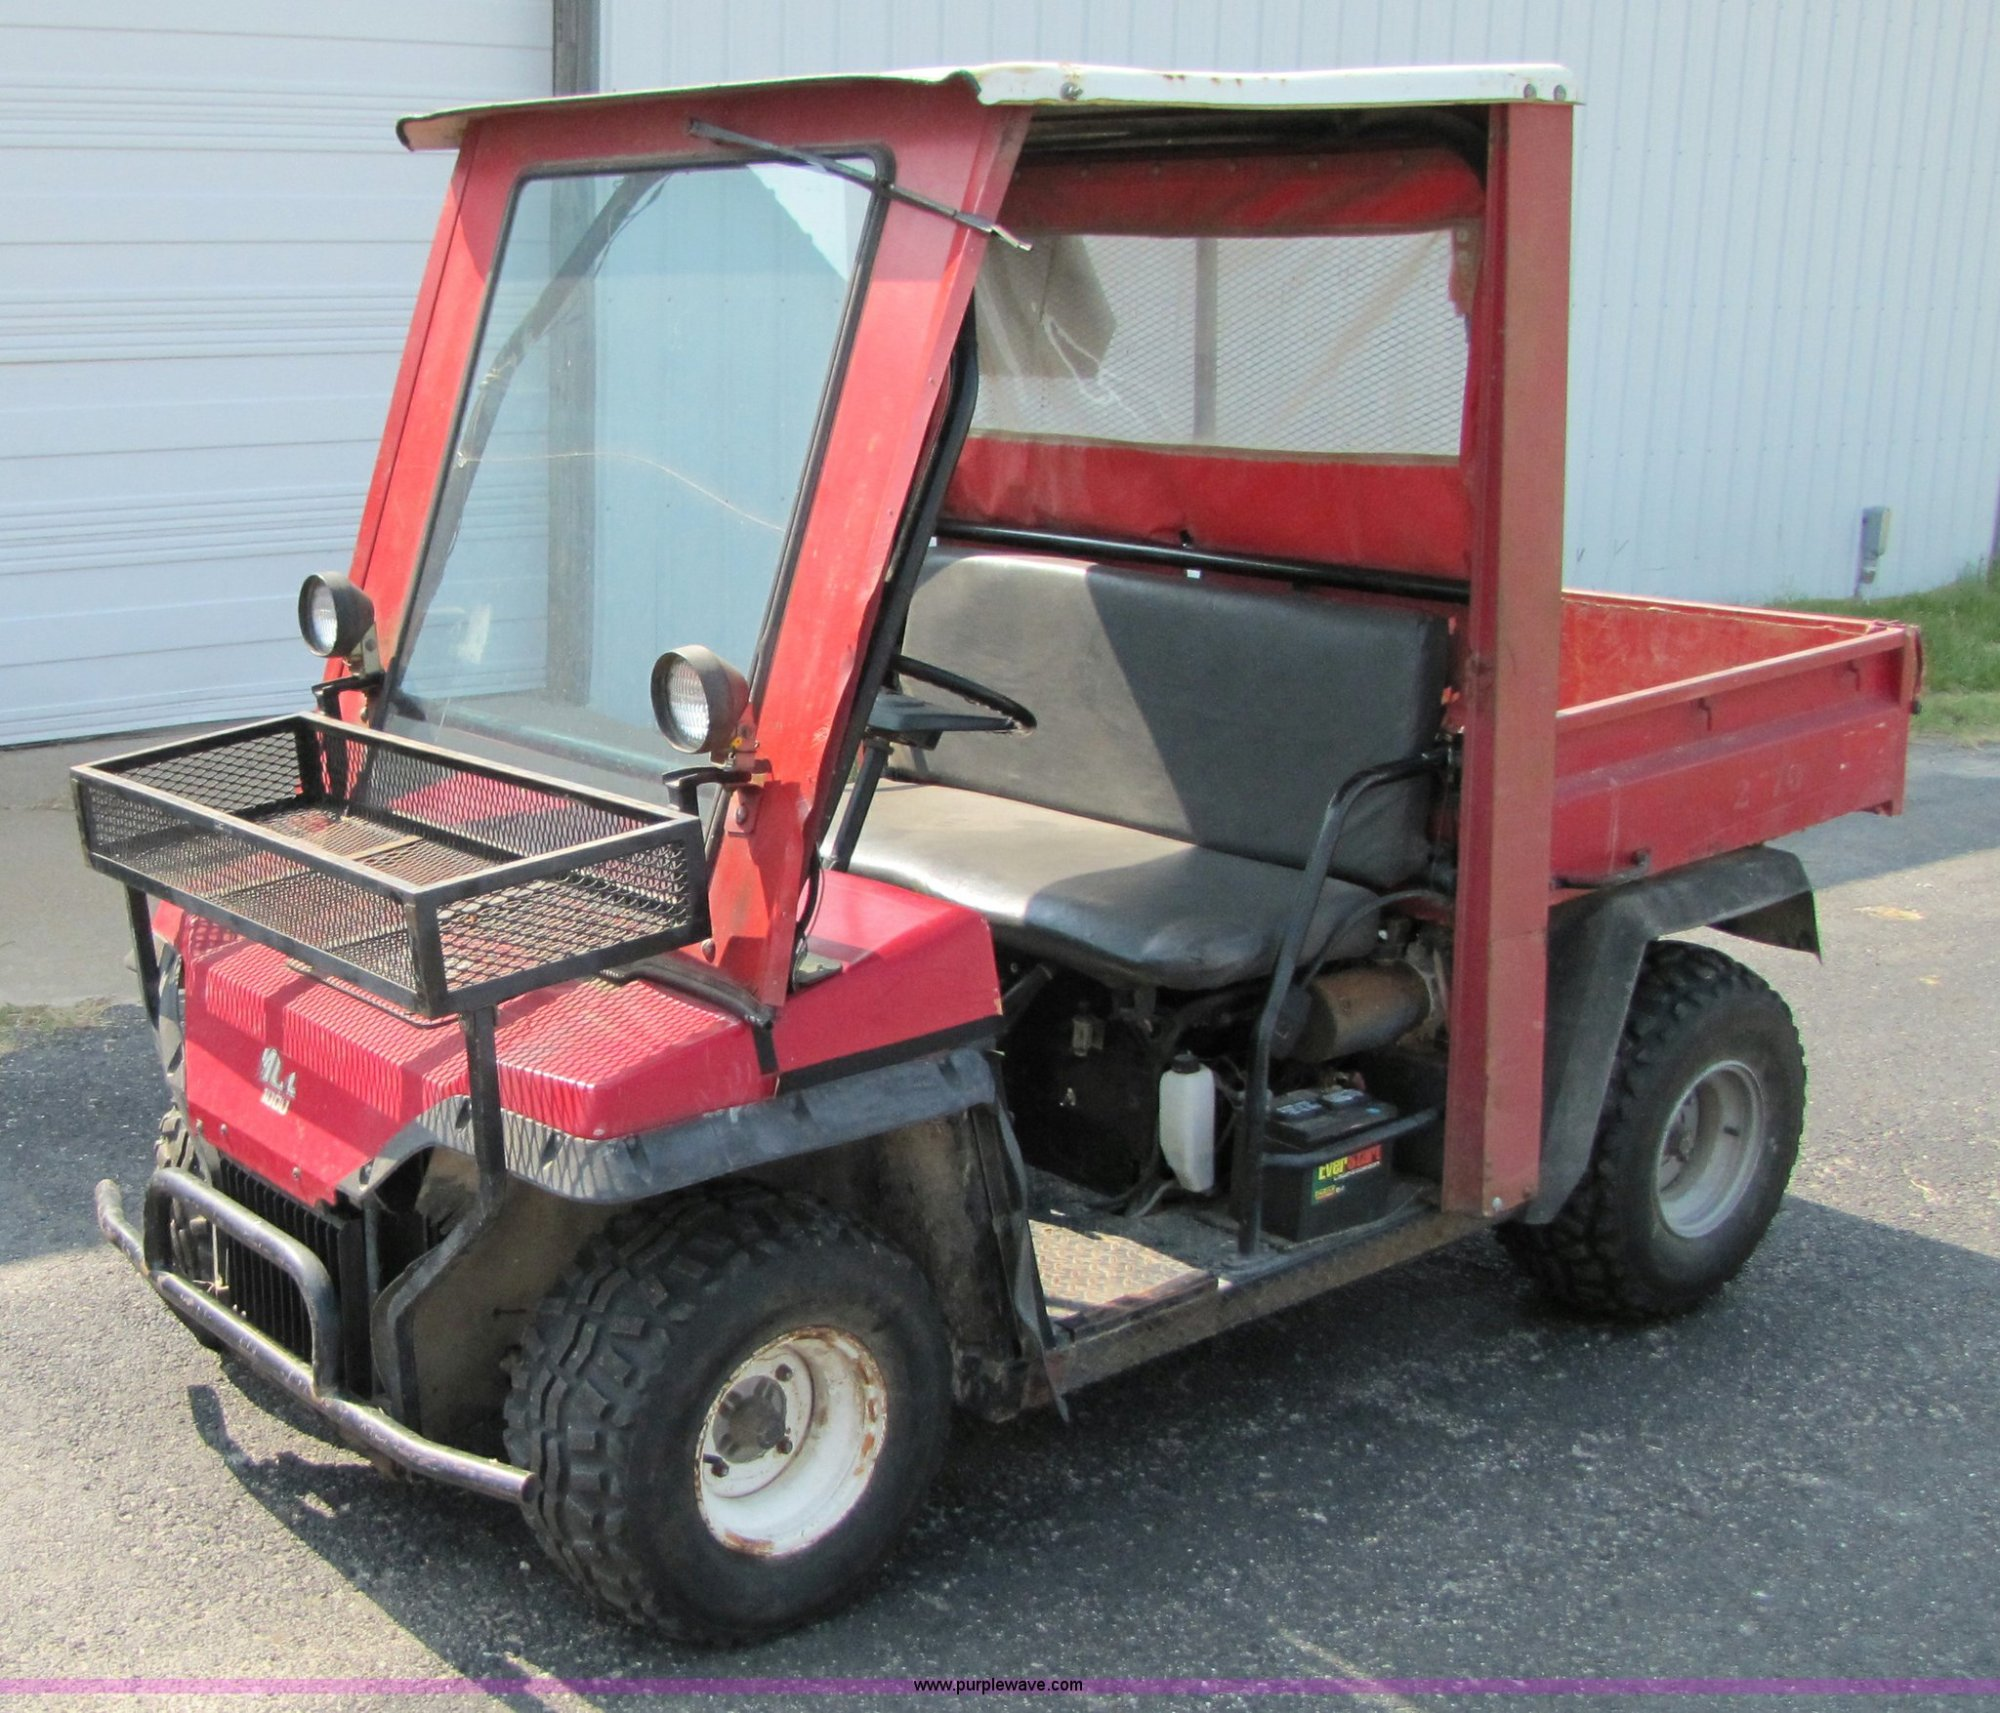 hight resolution of 3442 image for item 3442 kawasaki mule 1000